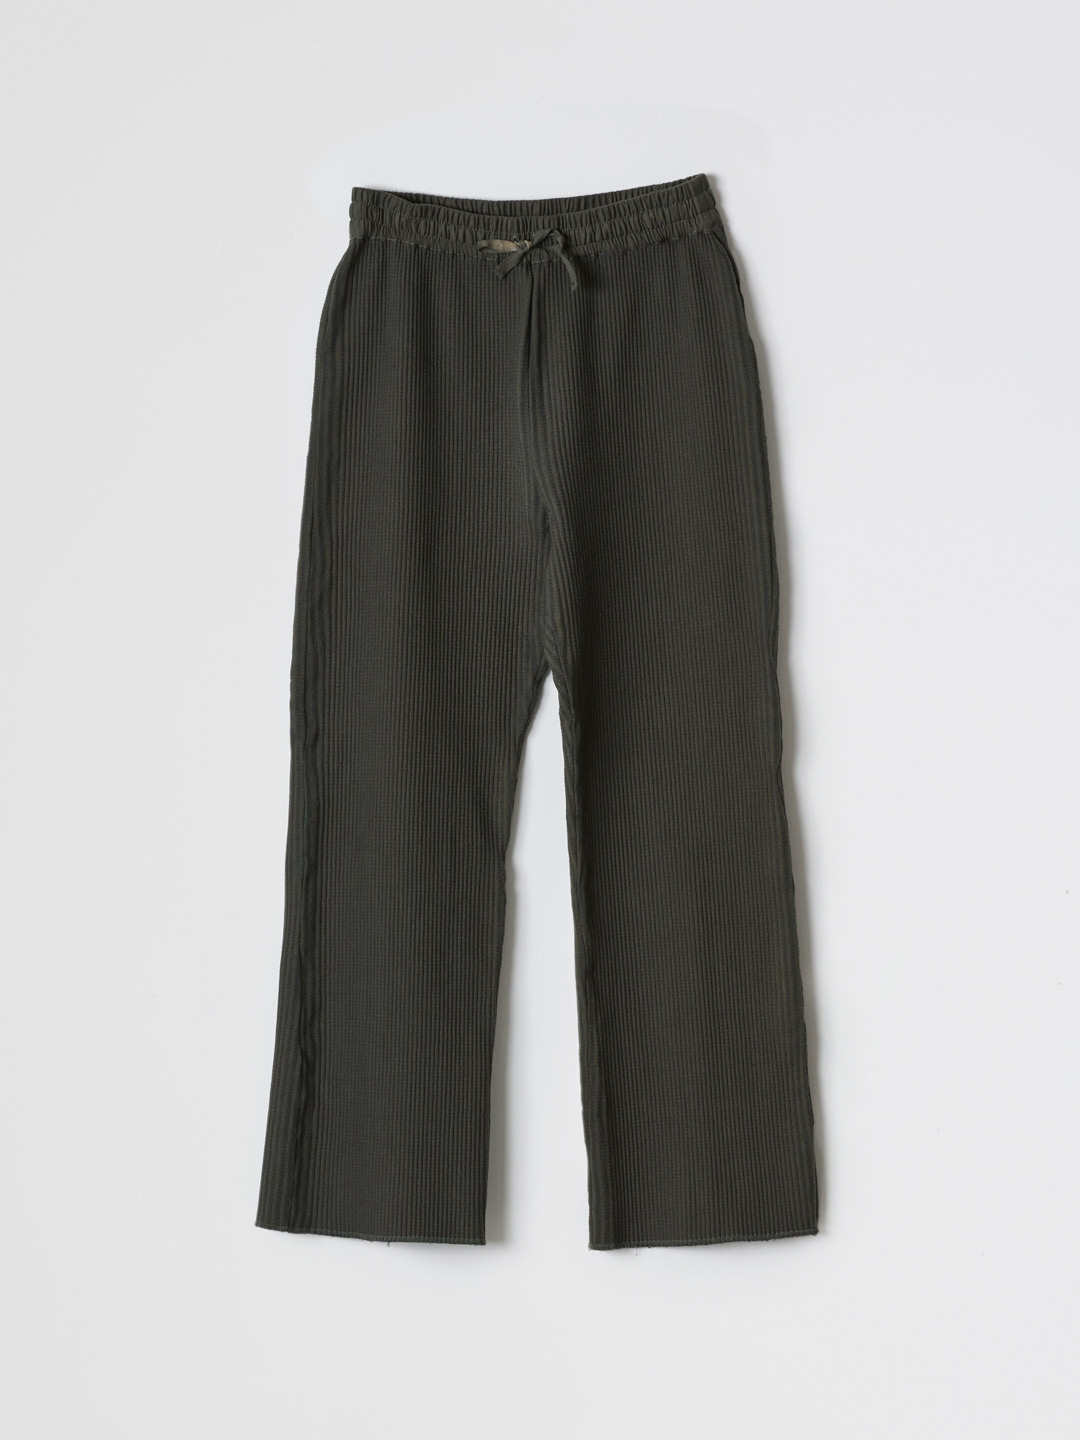 Cotton Woven Rib Pants - Green